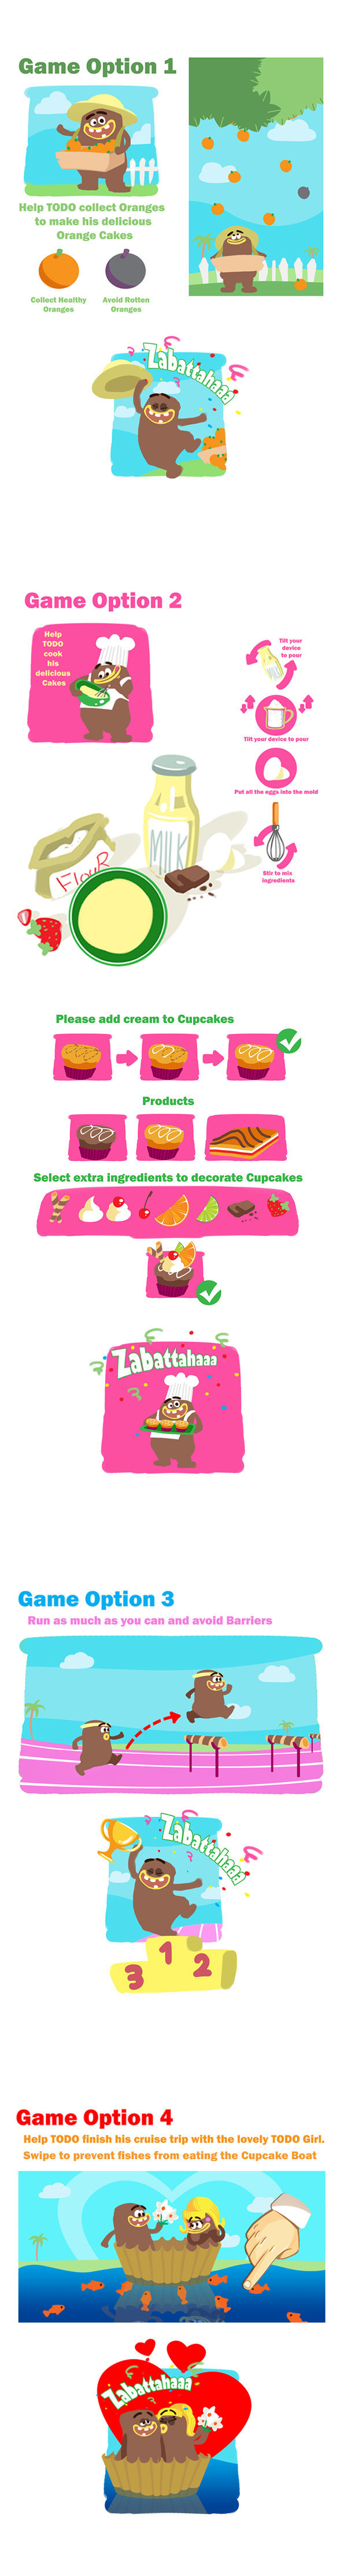 Four mobile game concepts for Todo Cake